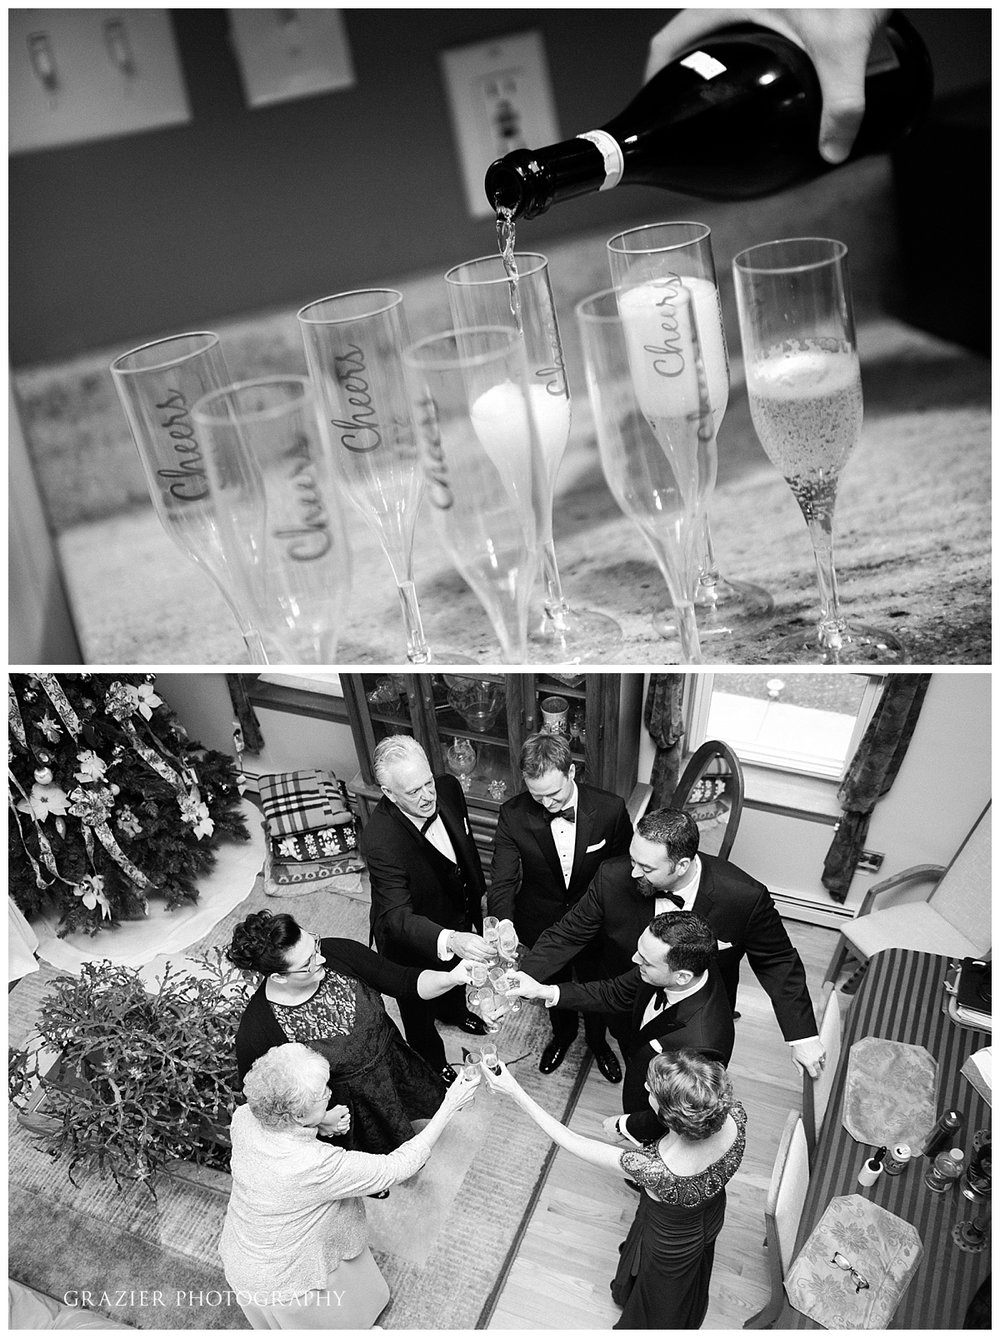 Boston Wedding Grazier Photography 12-2017-14_WEB.jpg